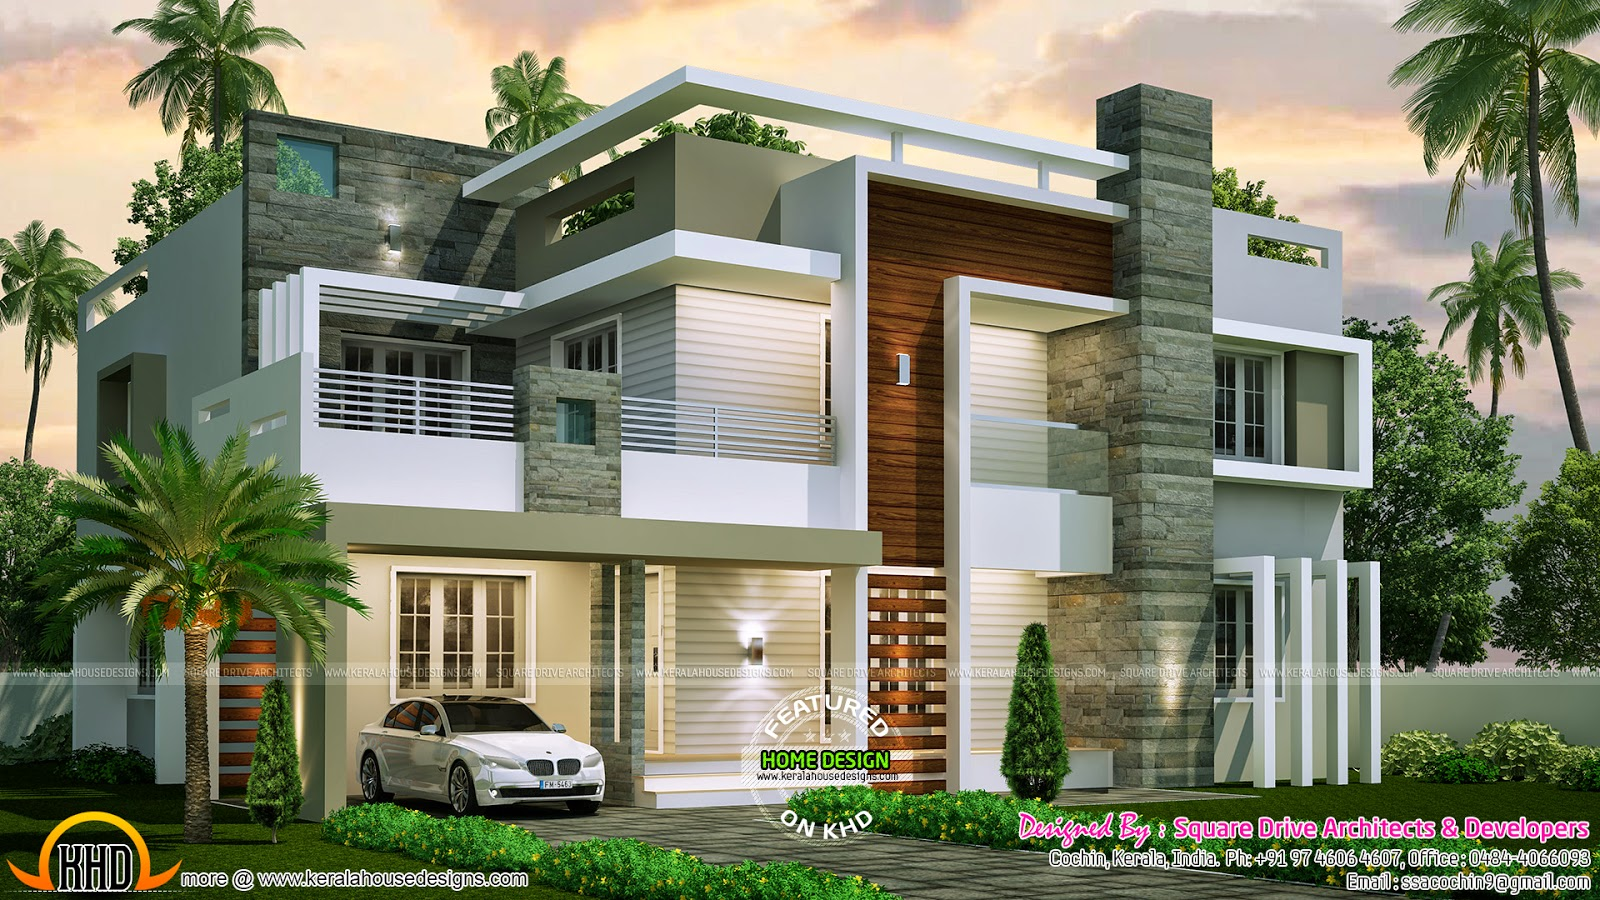 4 bedroom contemporary home design kerala home design for New modern home design photos